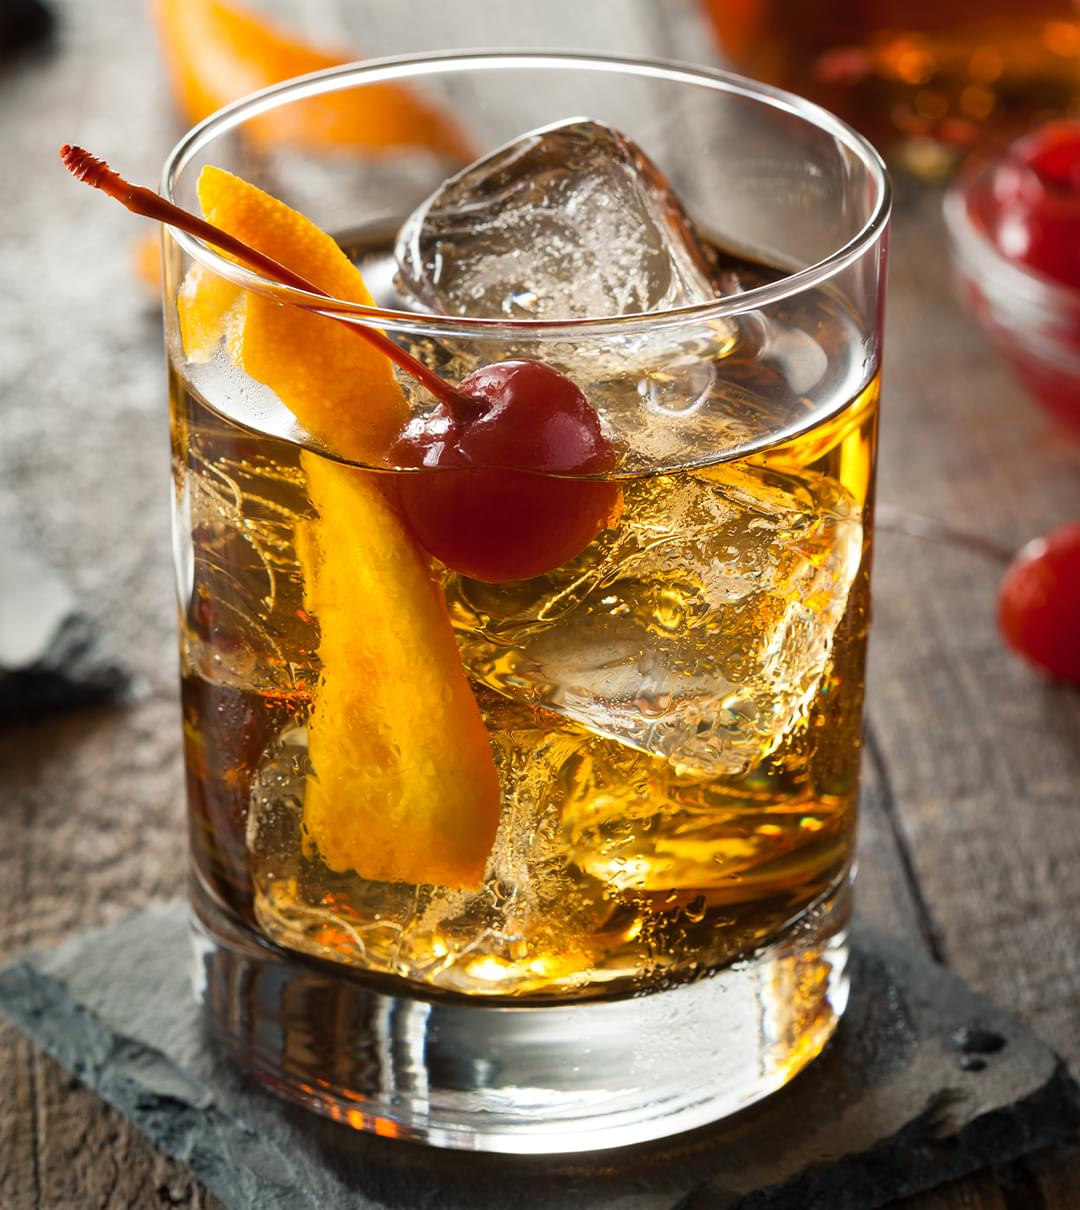 Limited Edition Old Fashioned